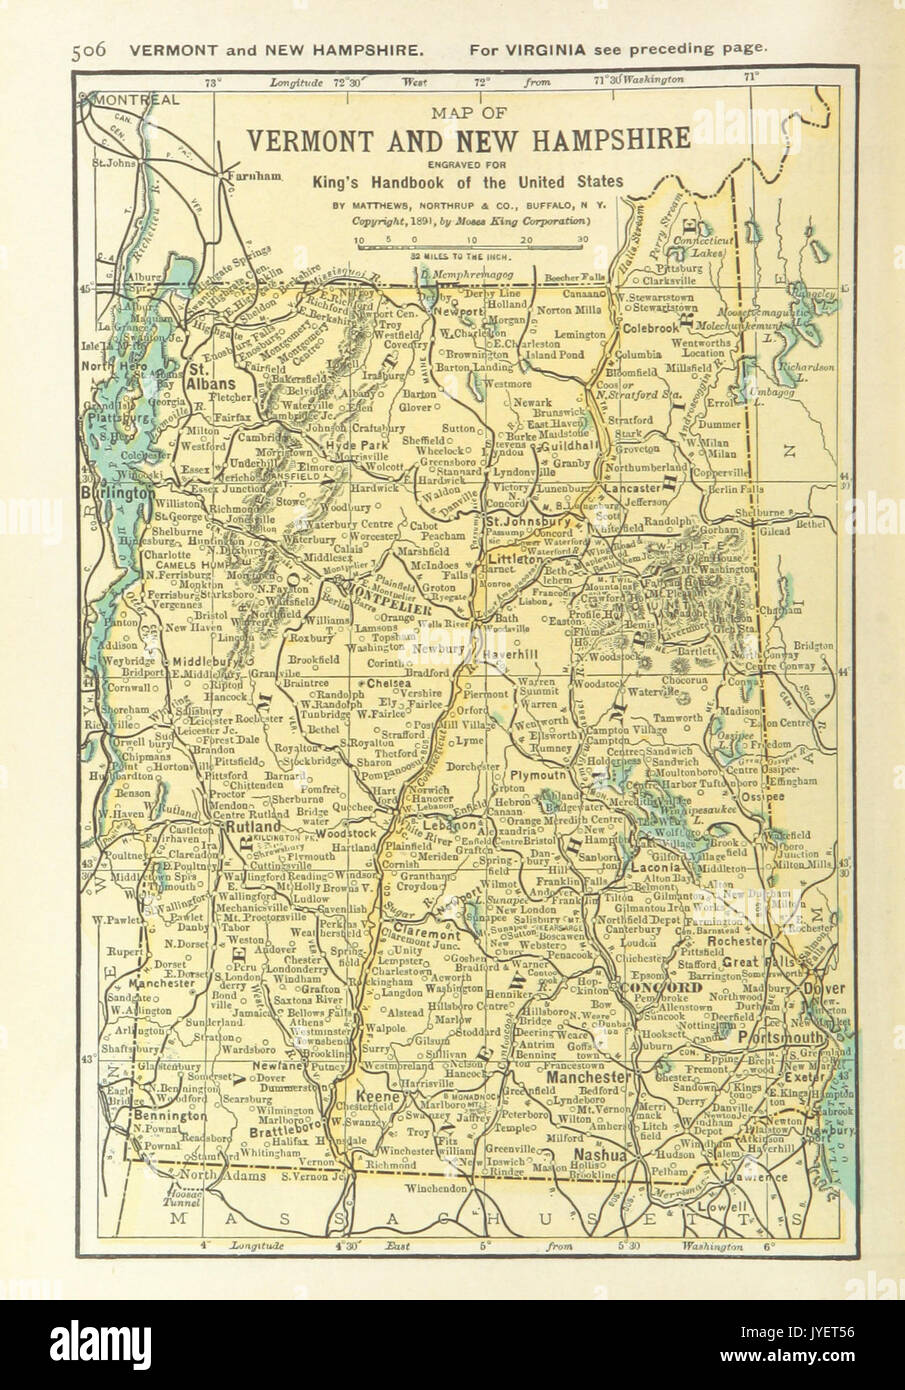 Us Maps 1891 P508 Map Of Vermont And New Hampshire Stock Photo